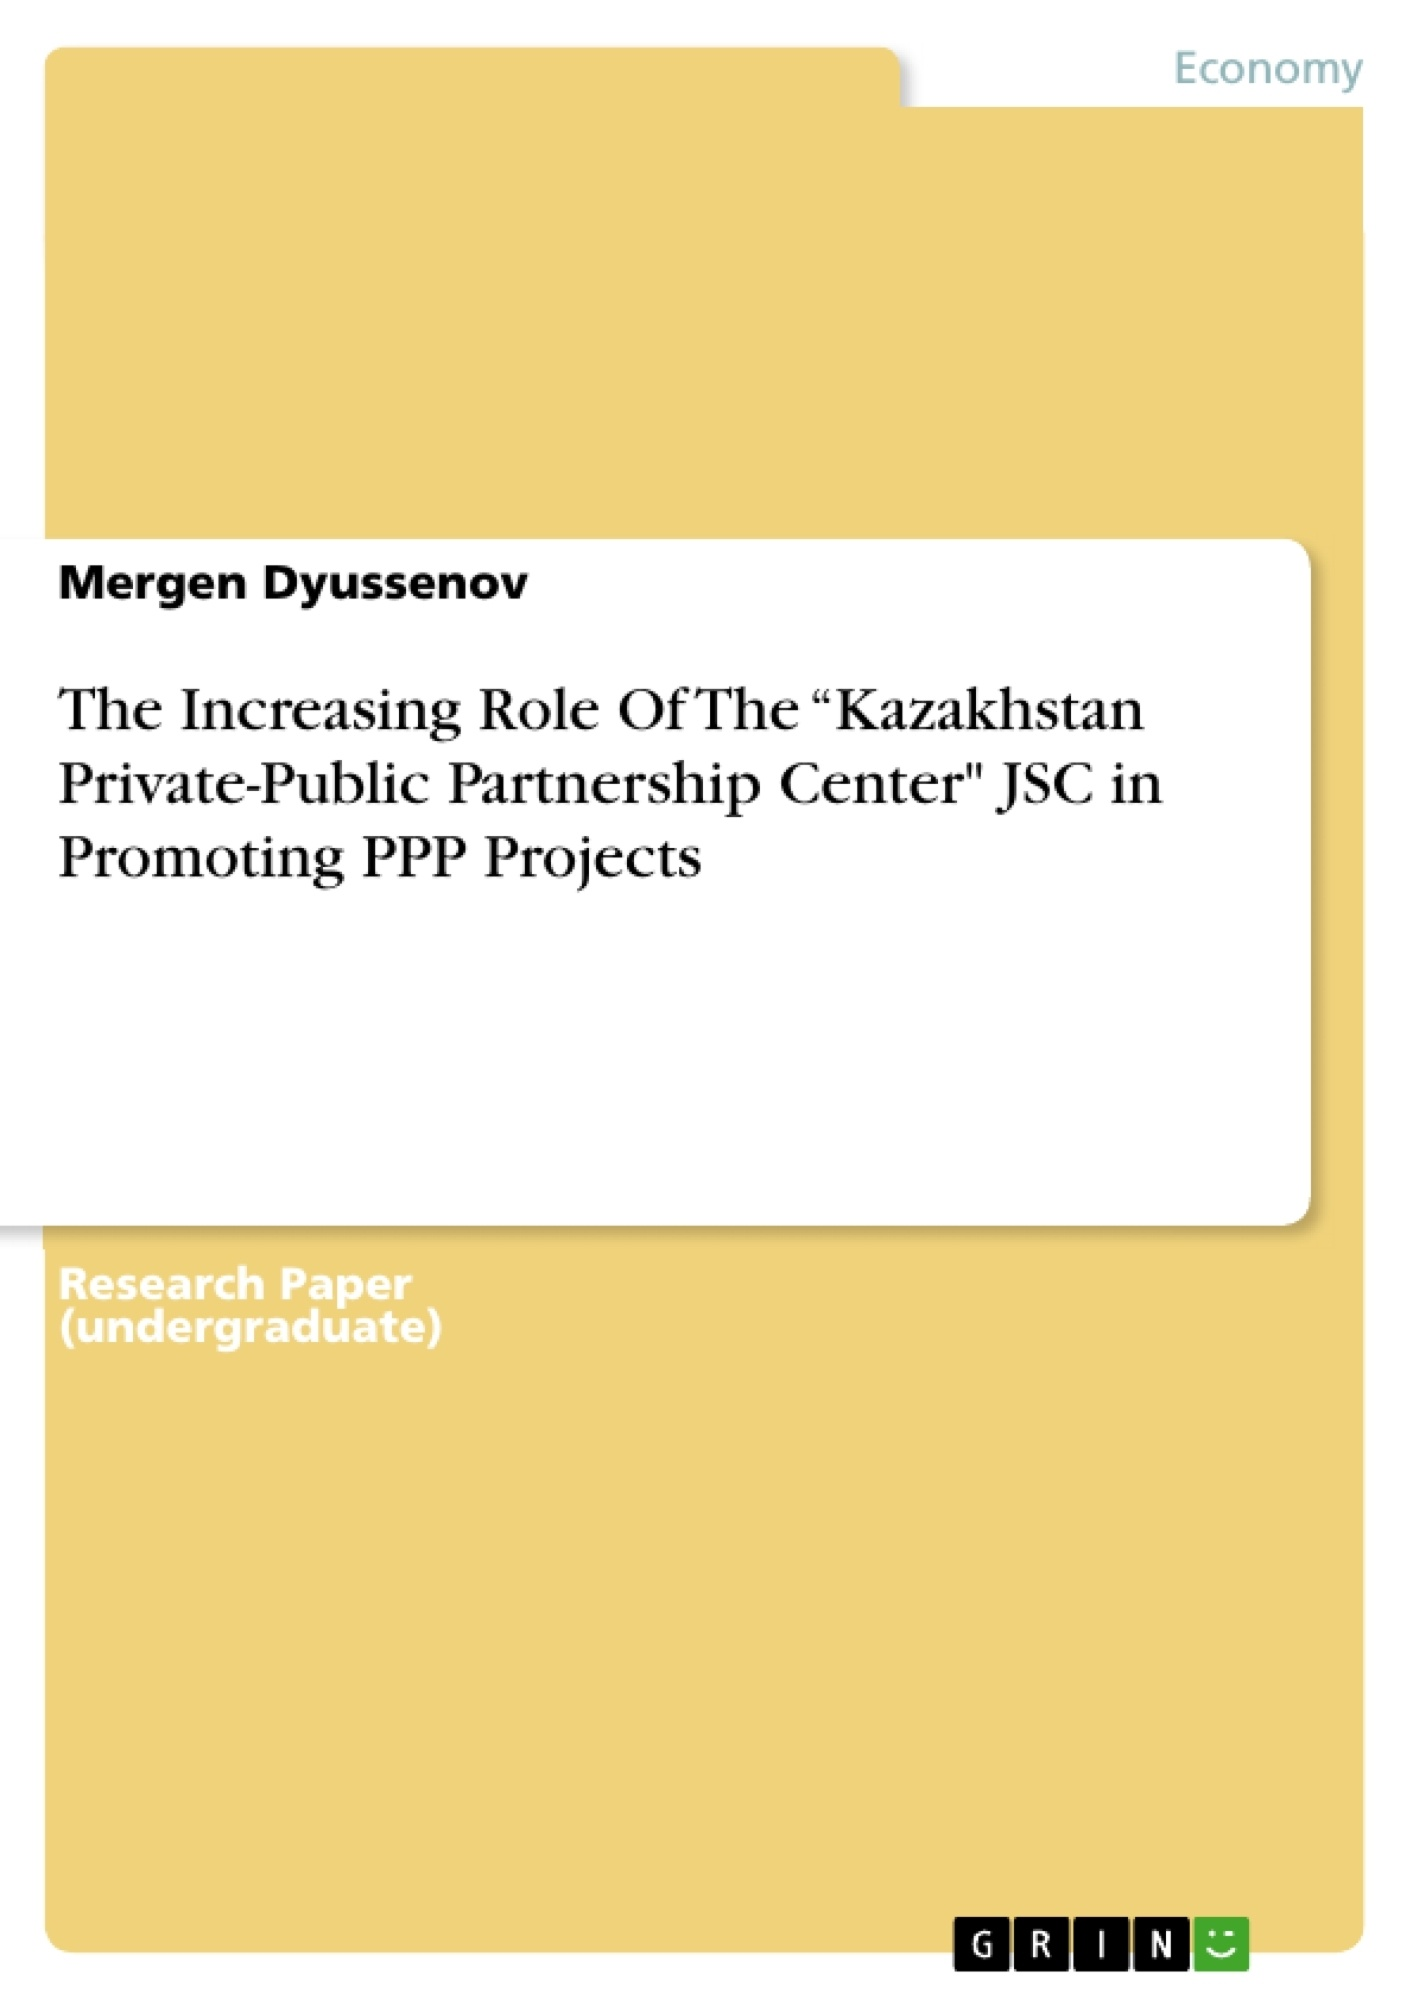 """Title: The Increasing Role Of The """"Kazakhstan Private-Public Partnership Center"""" JSC in Promoting PPP Projects"""